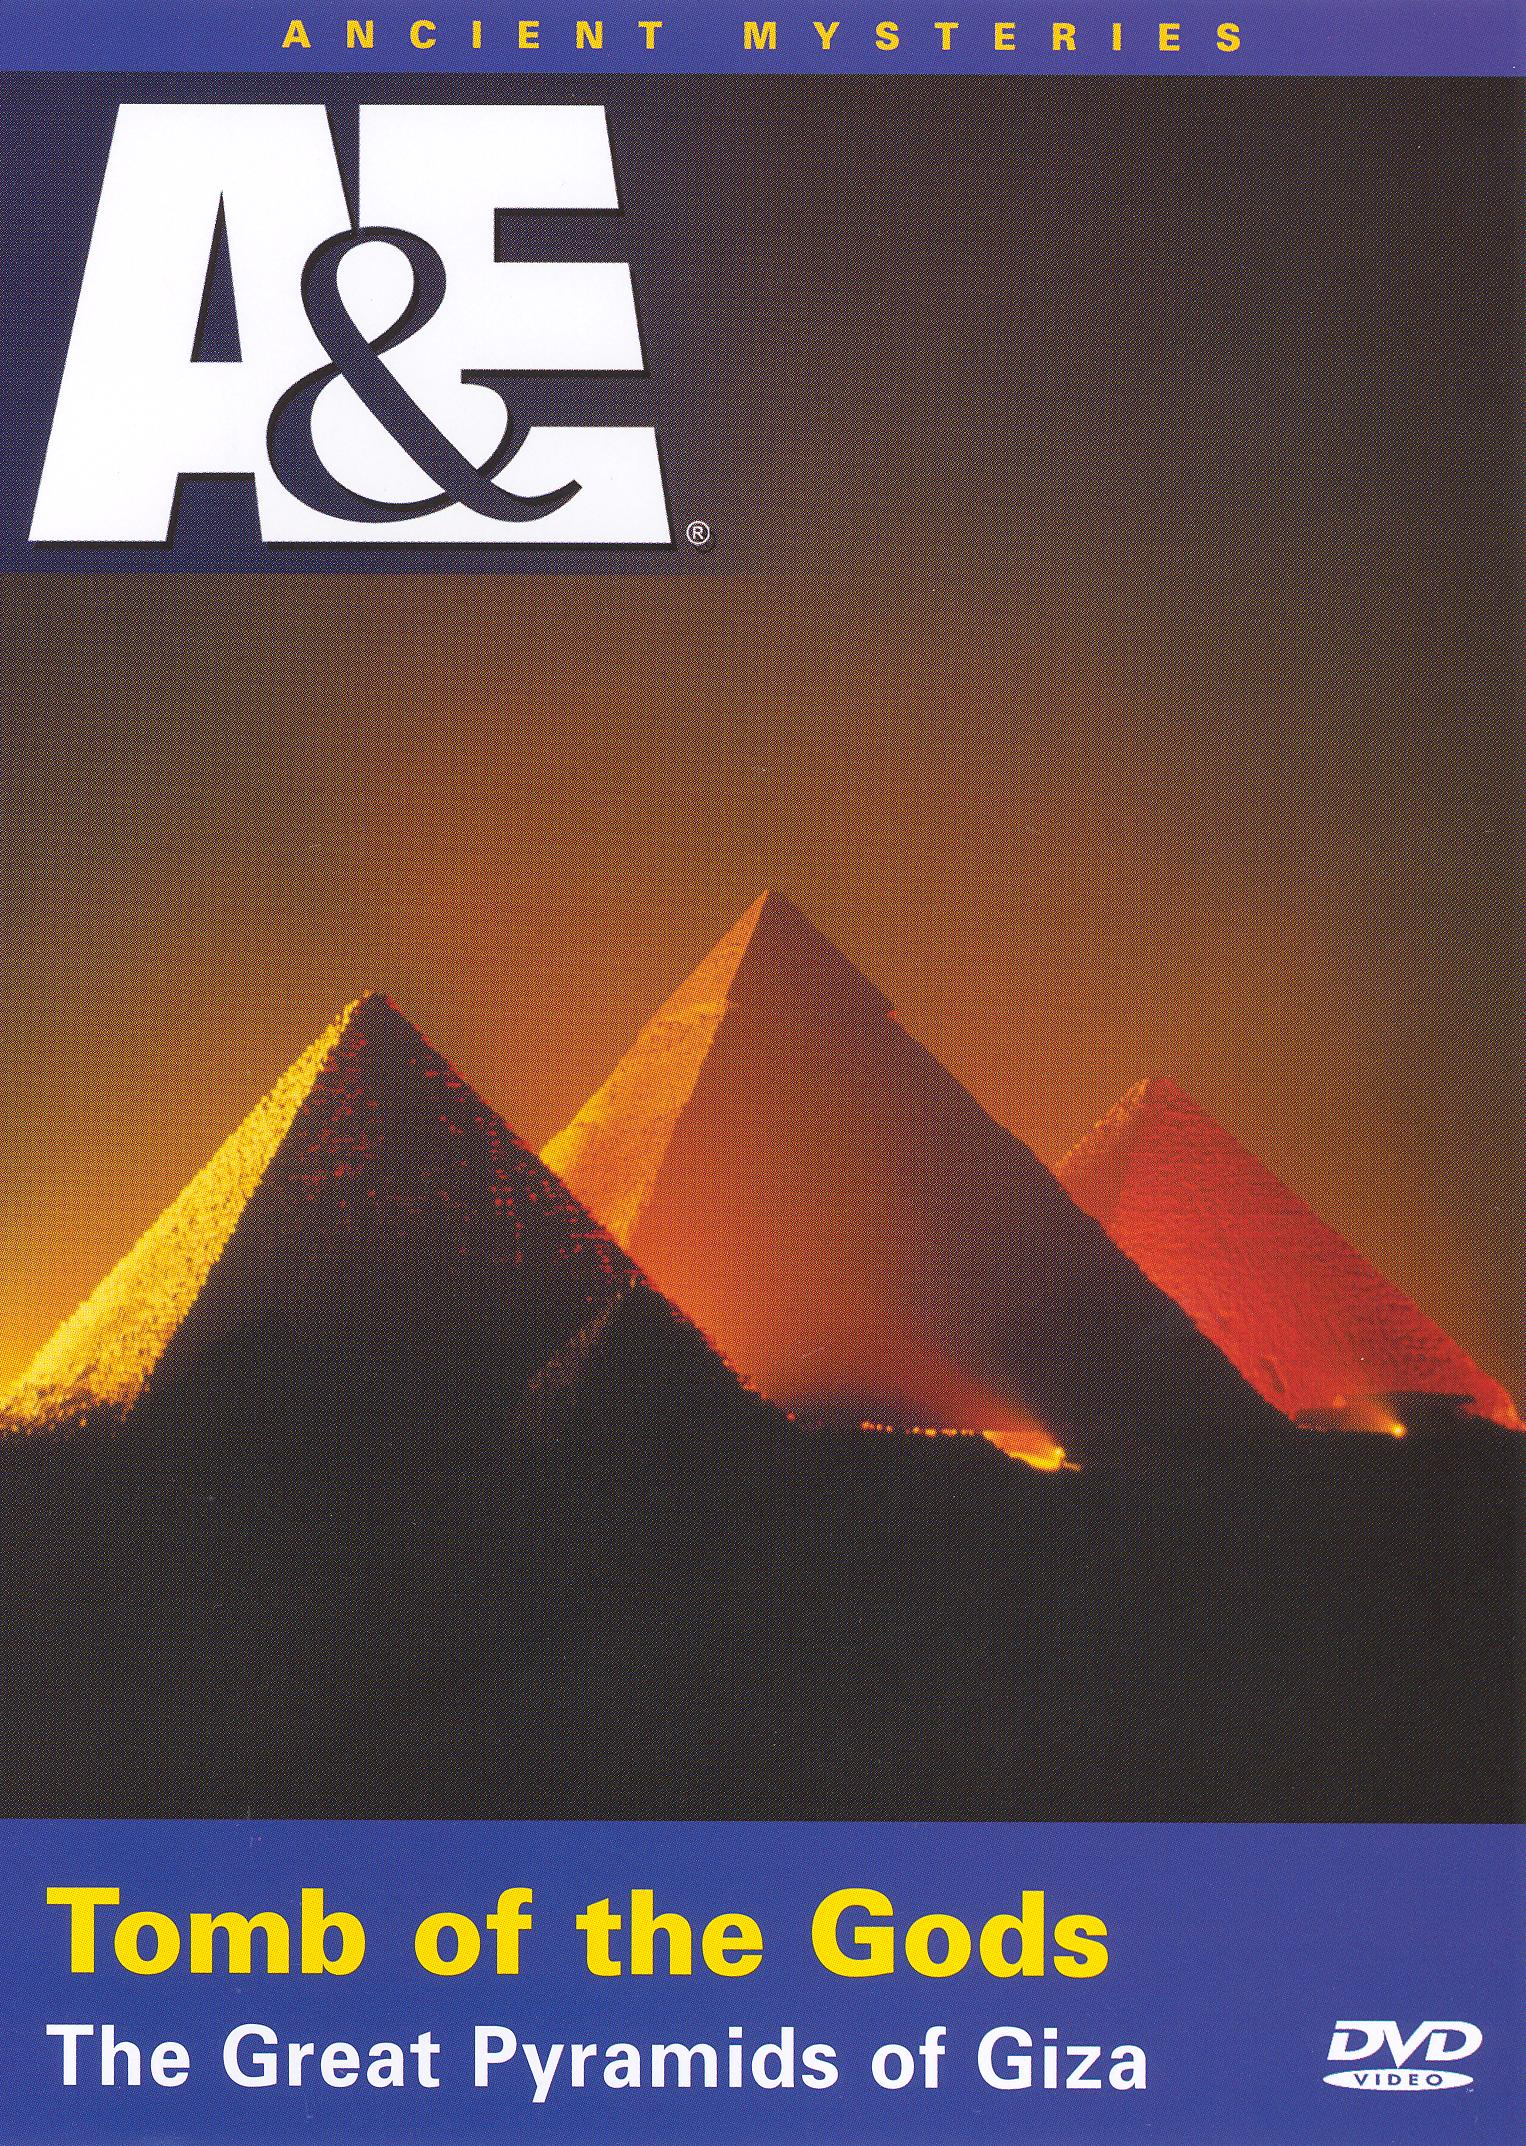 Ancient Mysteries: Tombs of the Gods - The Great Pyramids of Giza